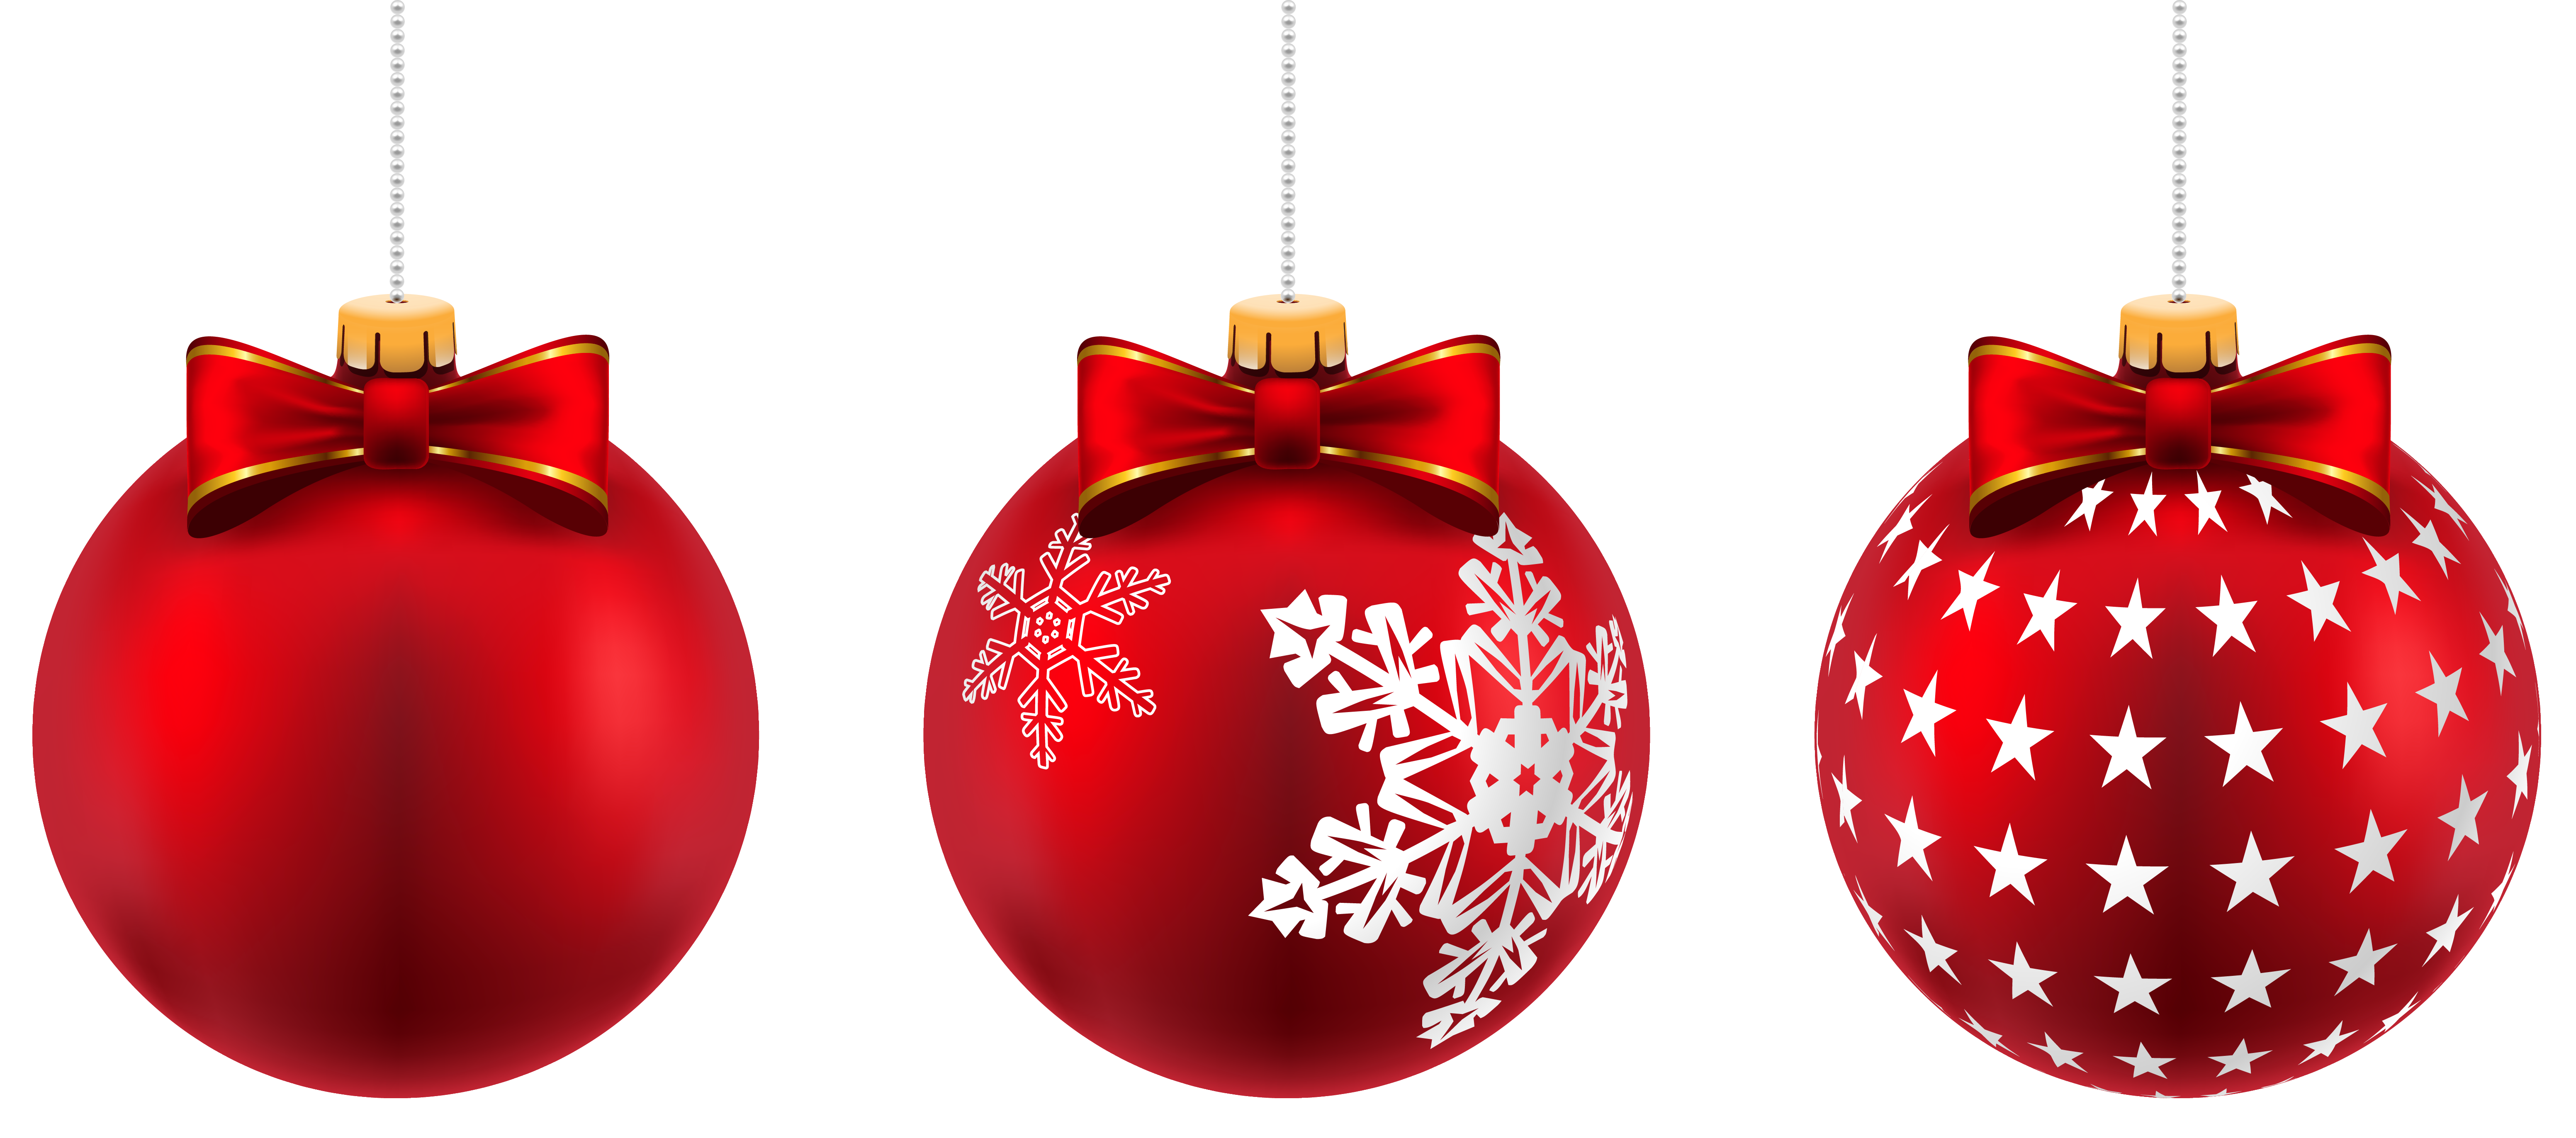 Christmas Red Ball Png - Beautiful Red Christmas Balls PNG Clip-Art Image   Gallery ...